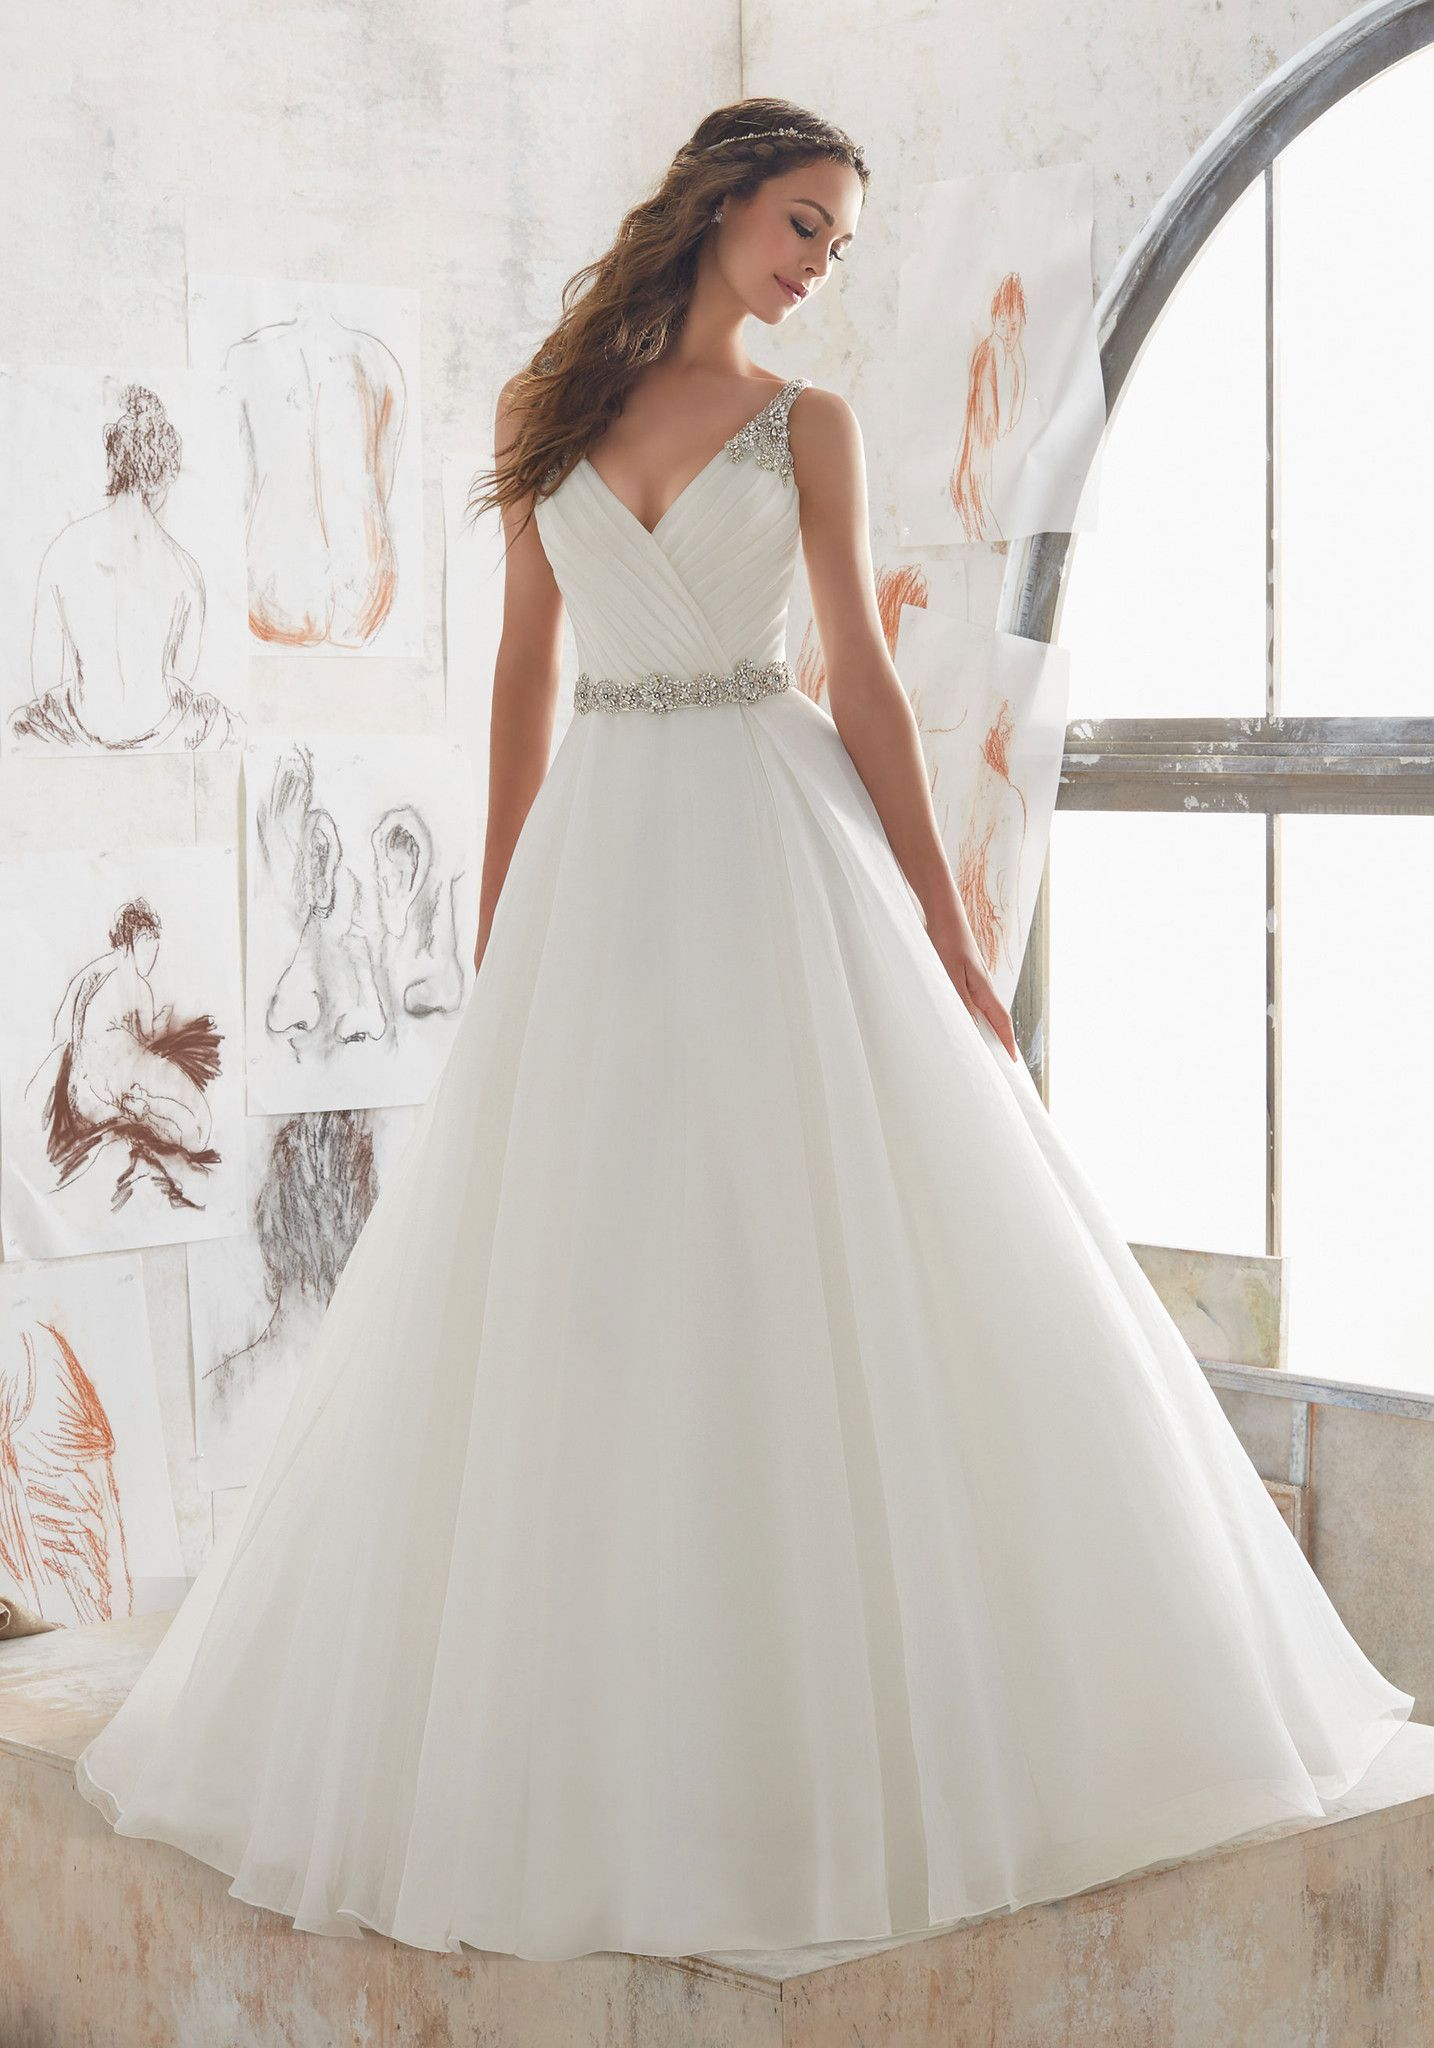 Blu marlowe all dressed up bridal gown silhouettes